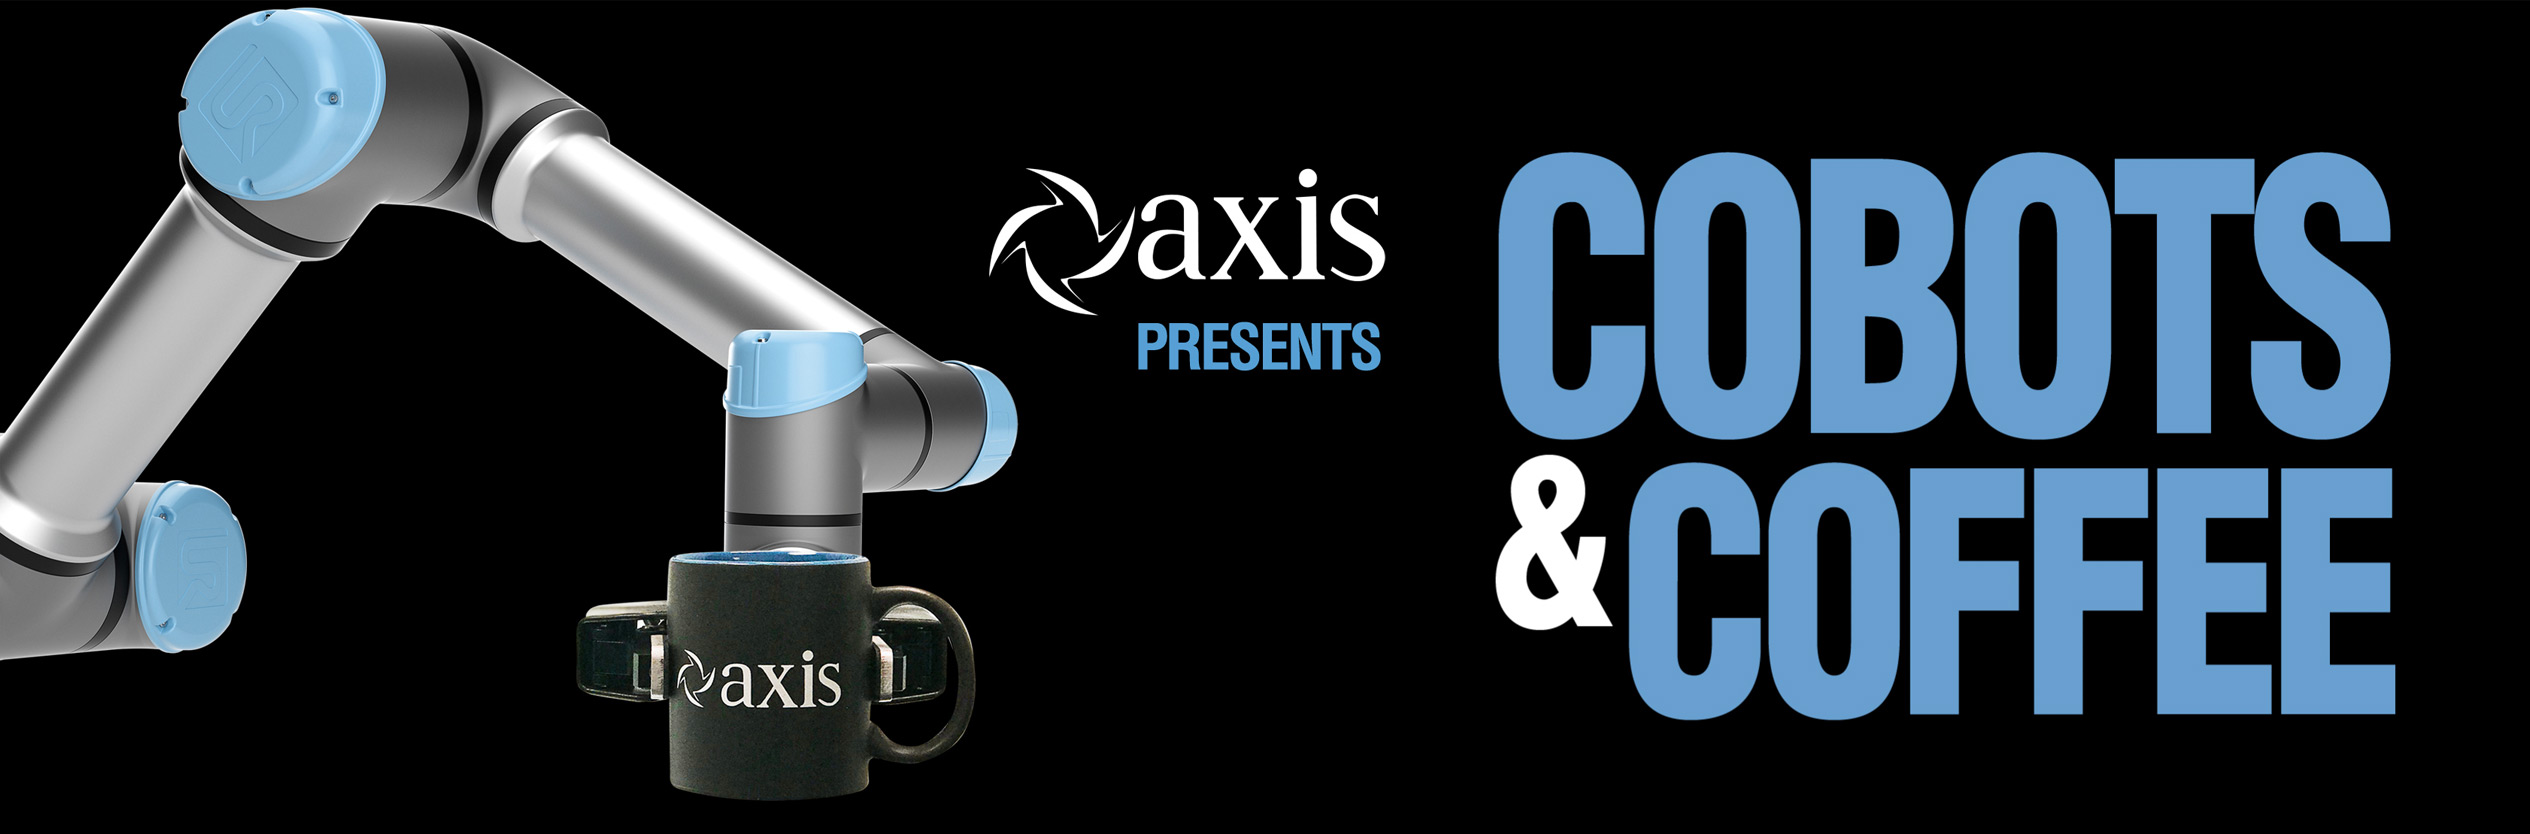 Cobots and Coffee Event